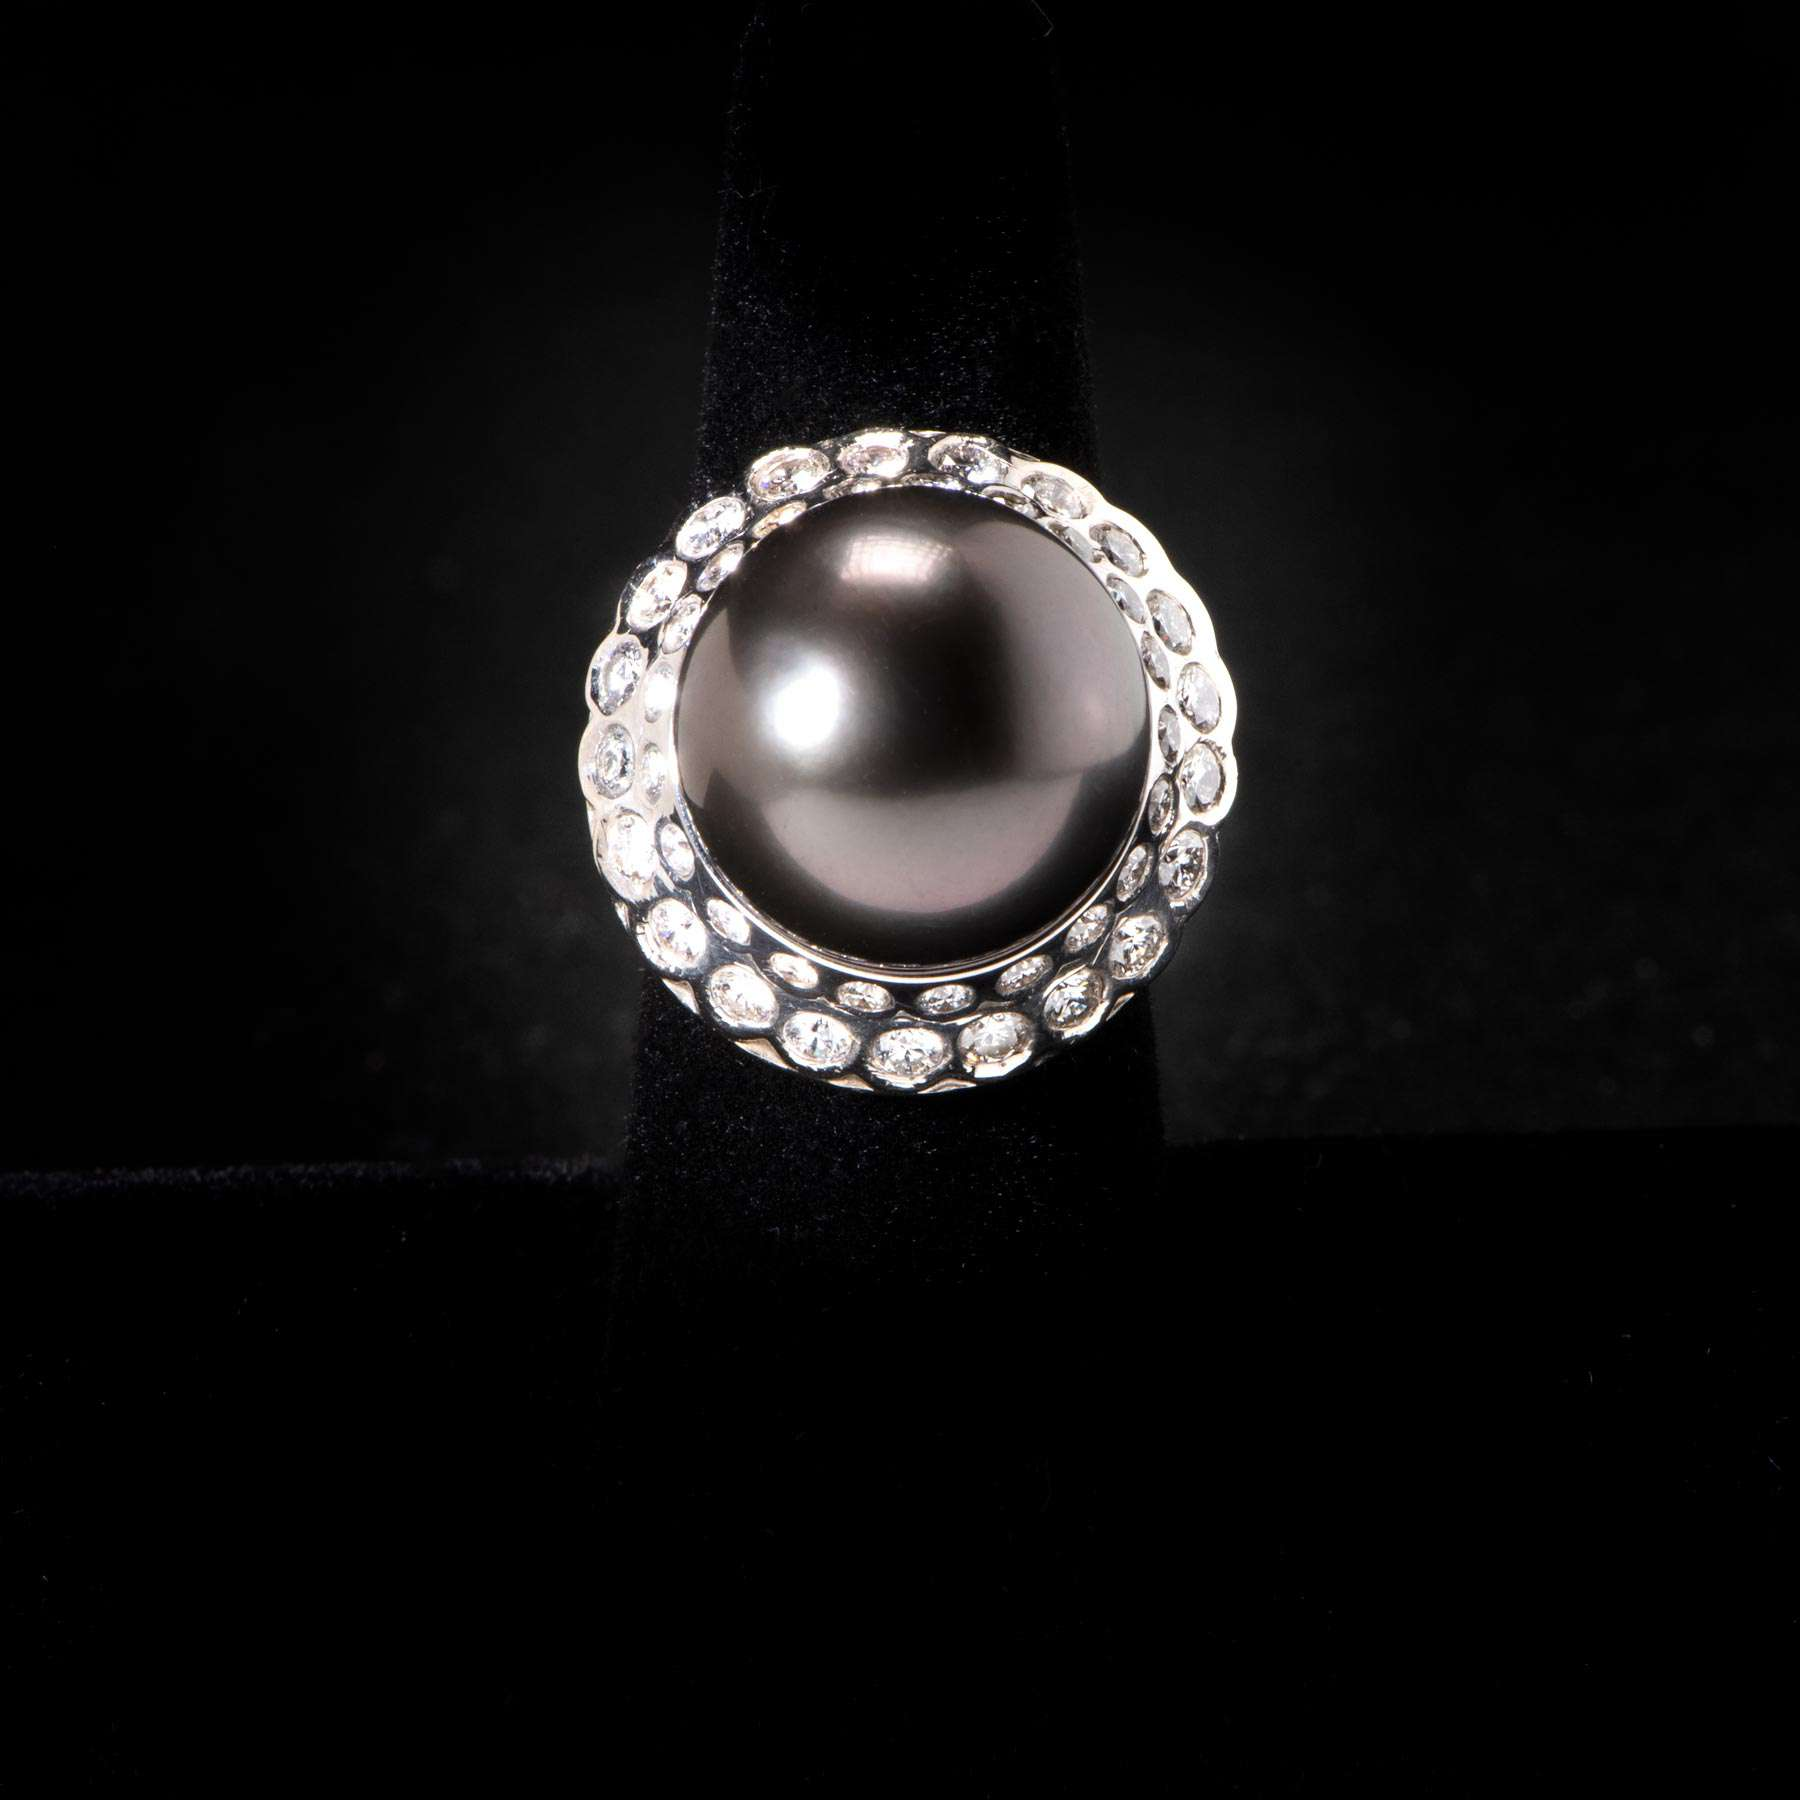 10-QW18K W G Ring W INterachanglable 17.5MM Tahitan S S Seas Pearl Centers & Apx 1/1/2 Cts. of Dias